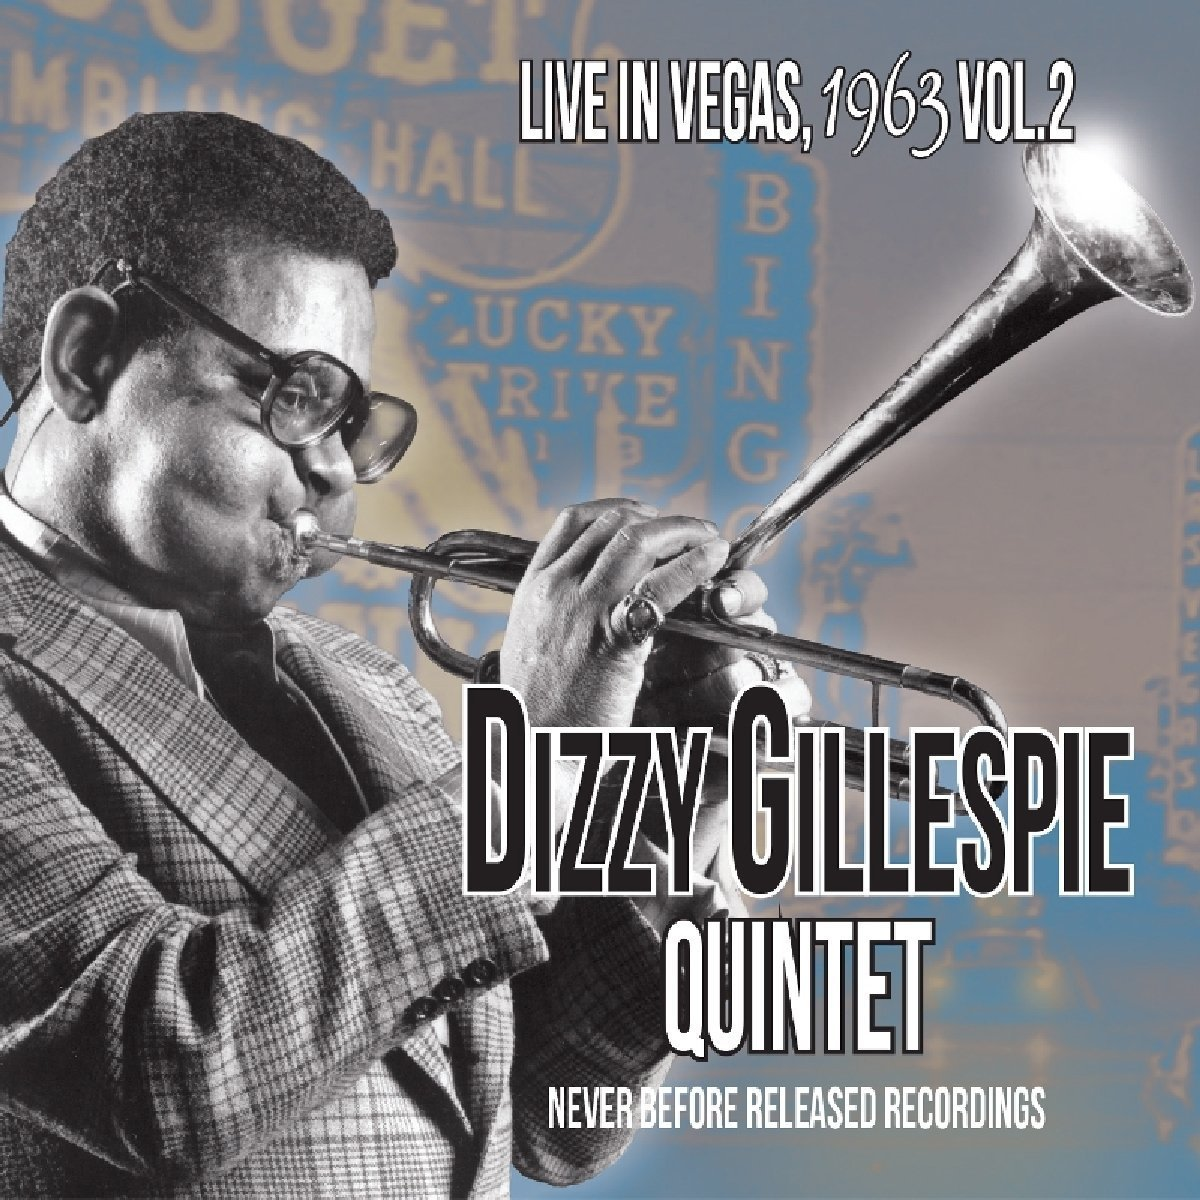 Live In Vegas 1963 Volume 2 by Jazz Rewind Records (Image #1)